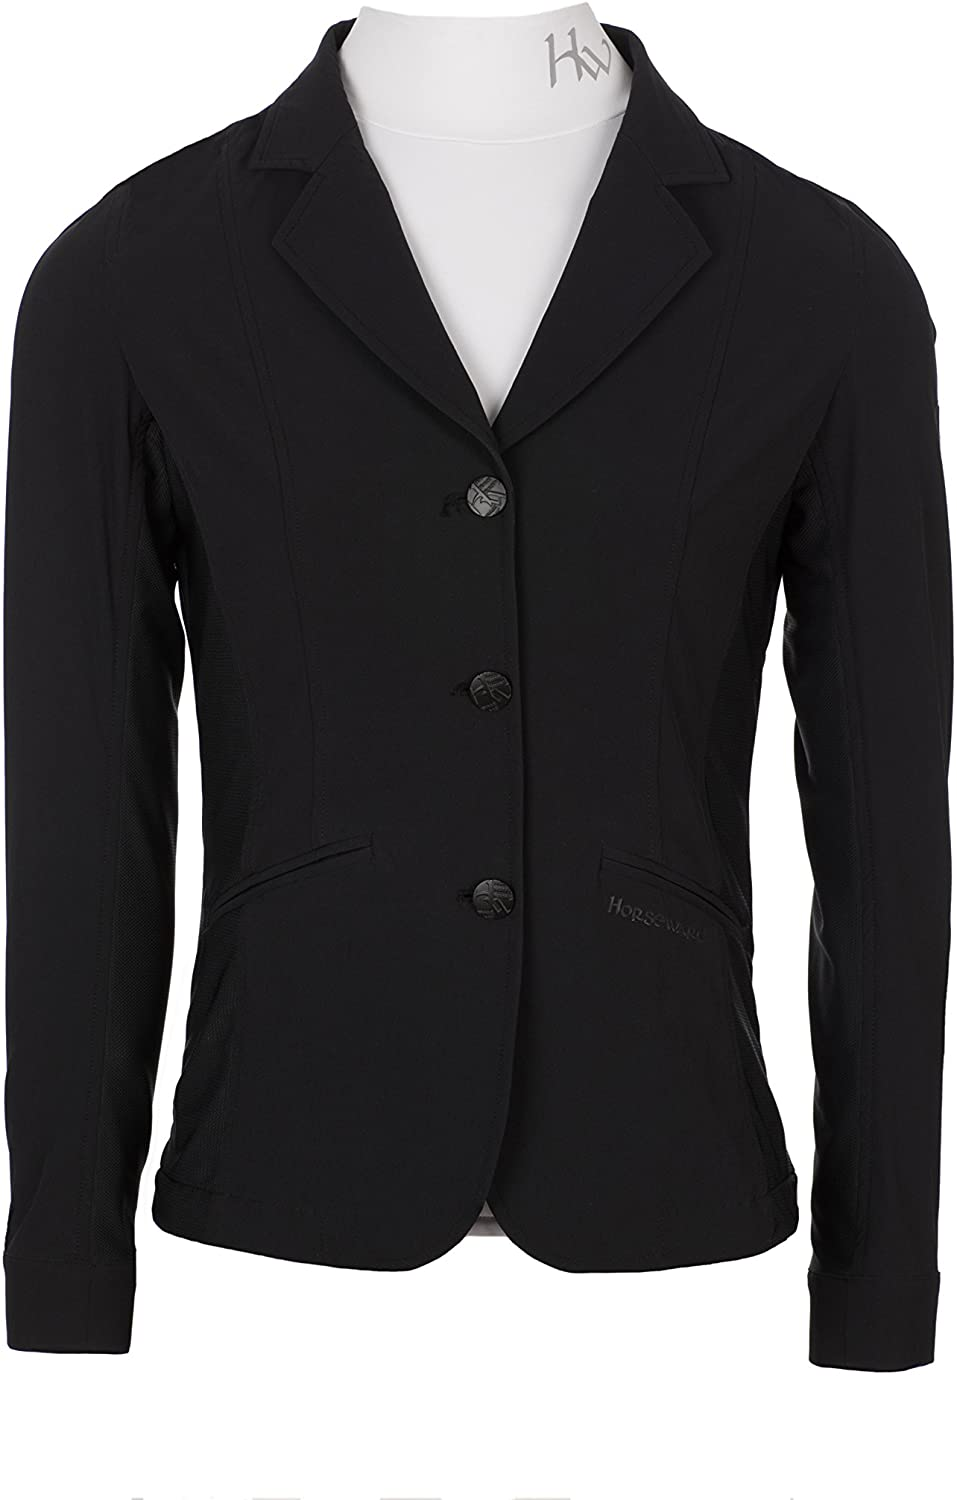 specialty shop Horseware Air MK2 Ladies Competition Great interest Jacket Black